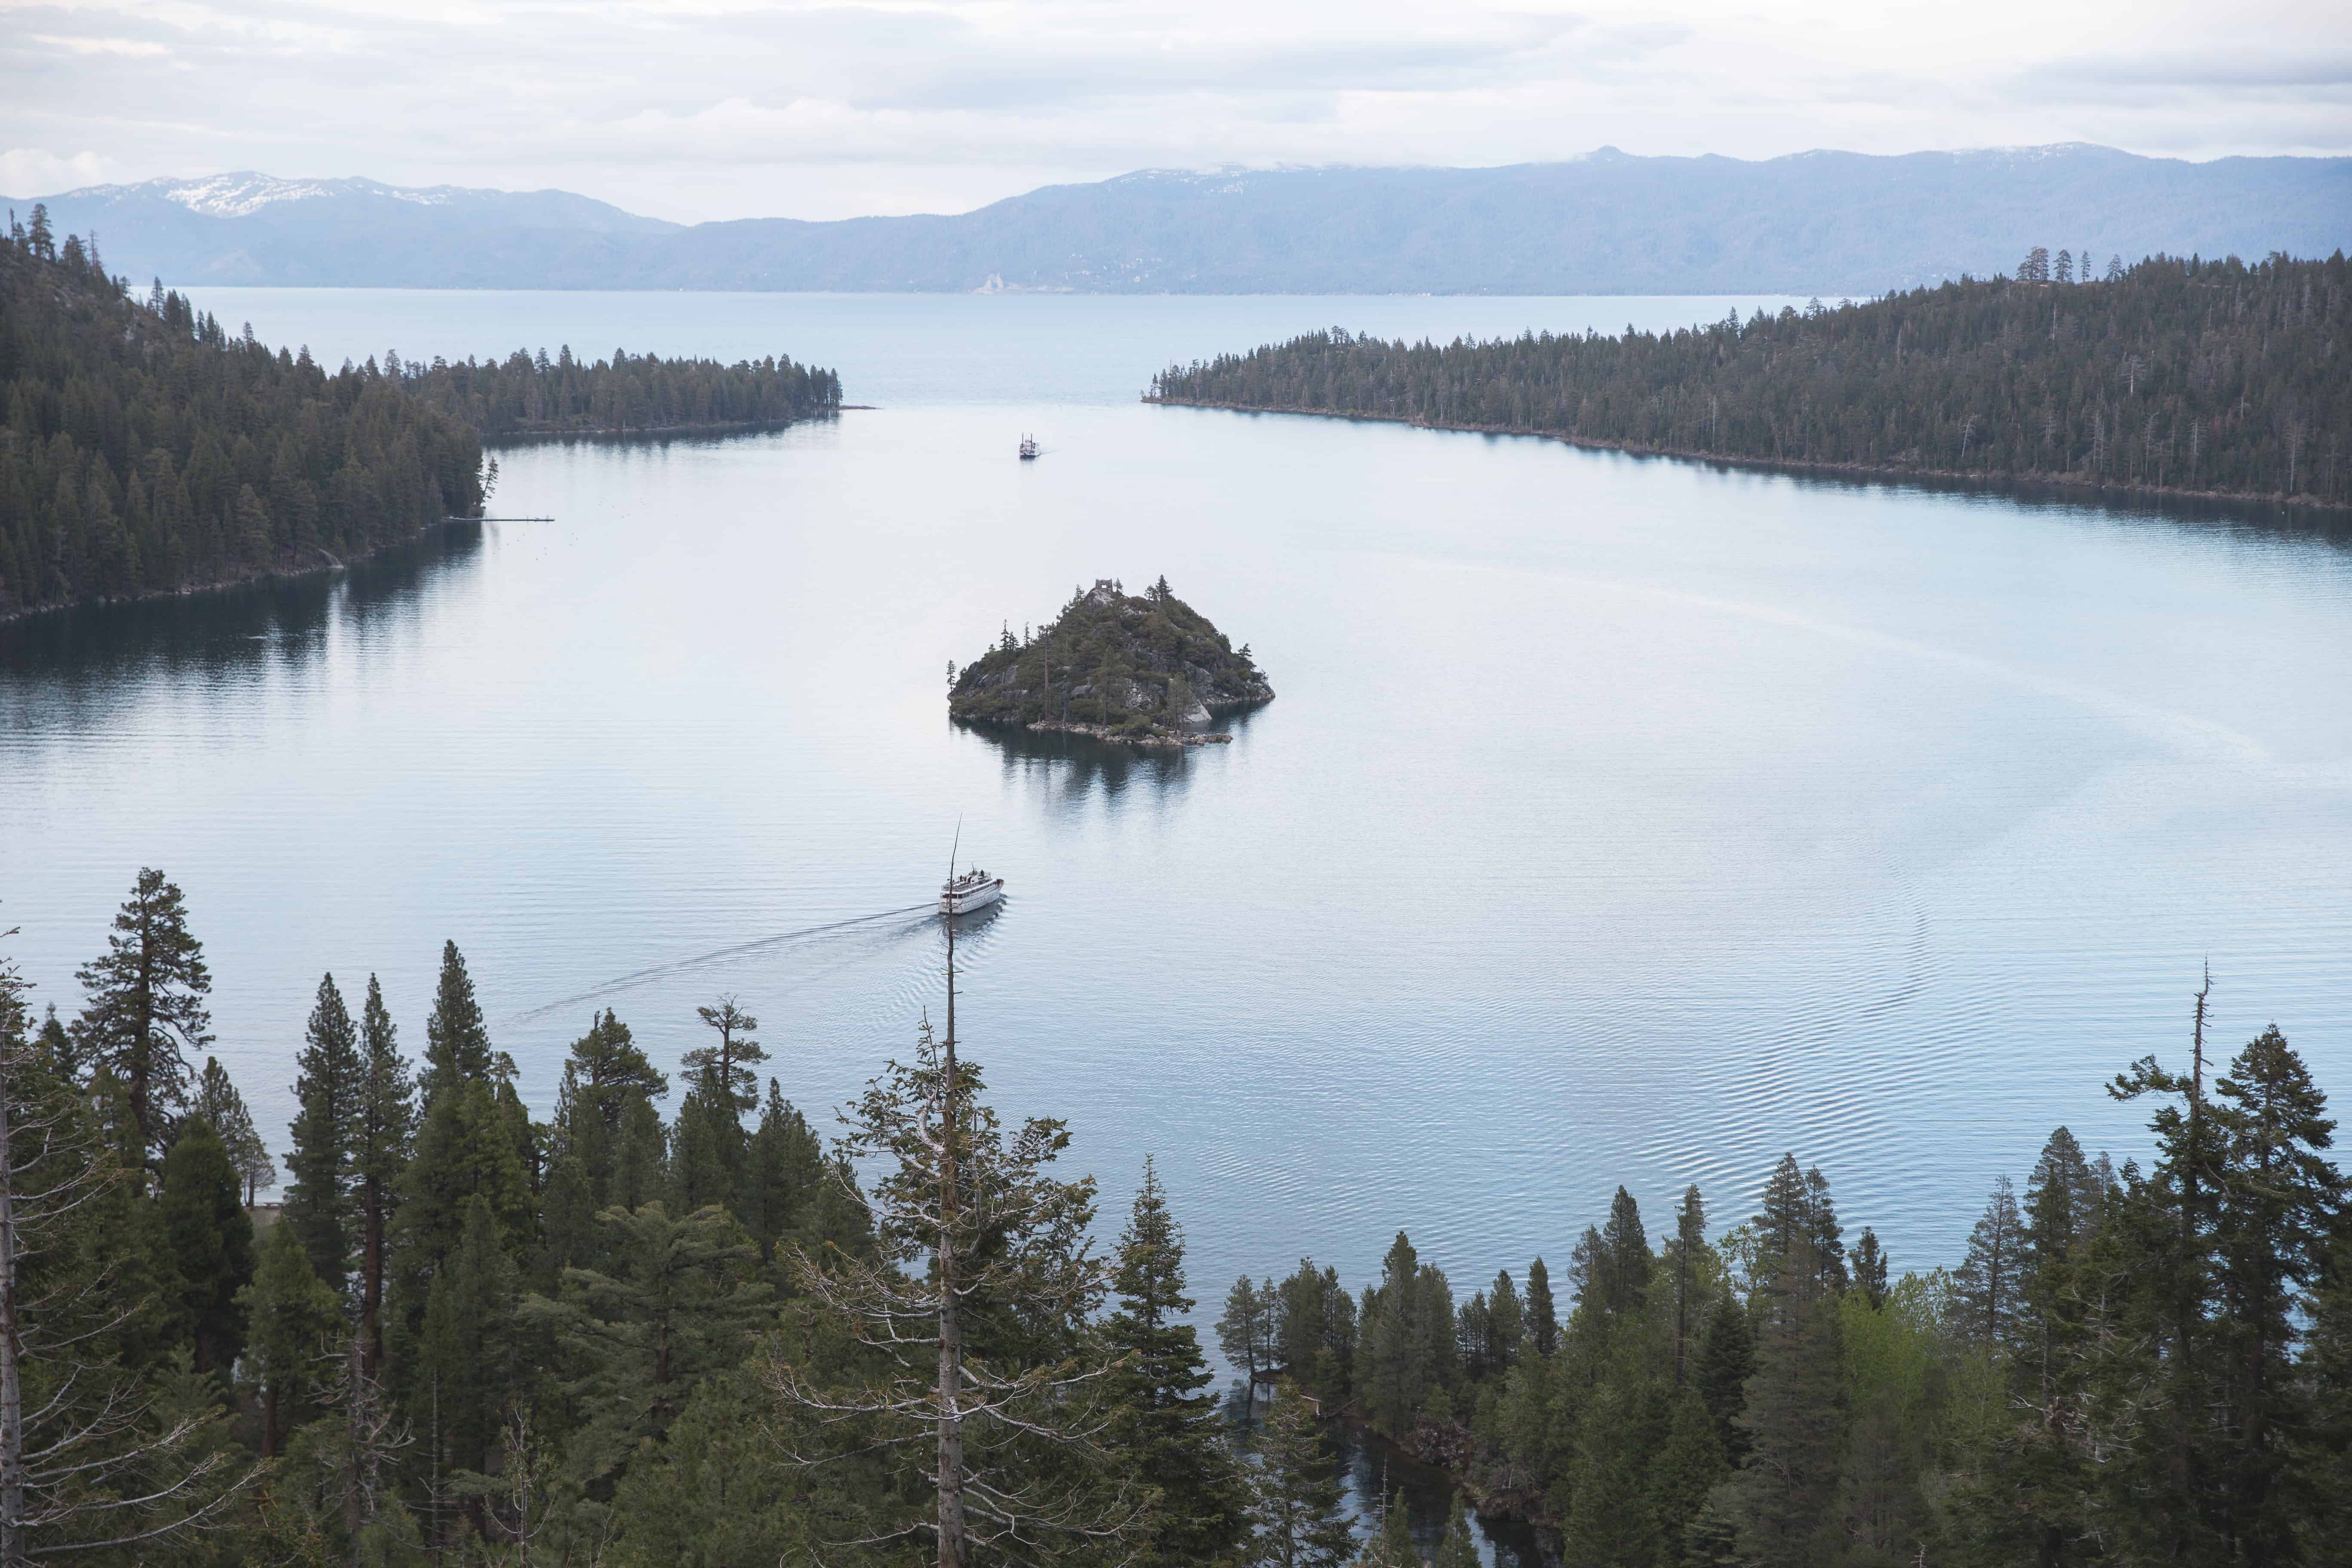 The Emerald Bay overlook in Lake Tahoe, California is full of pine trees, the lake, and mountains!